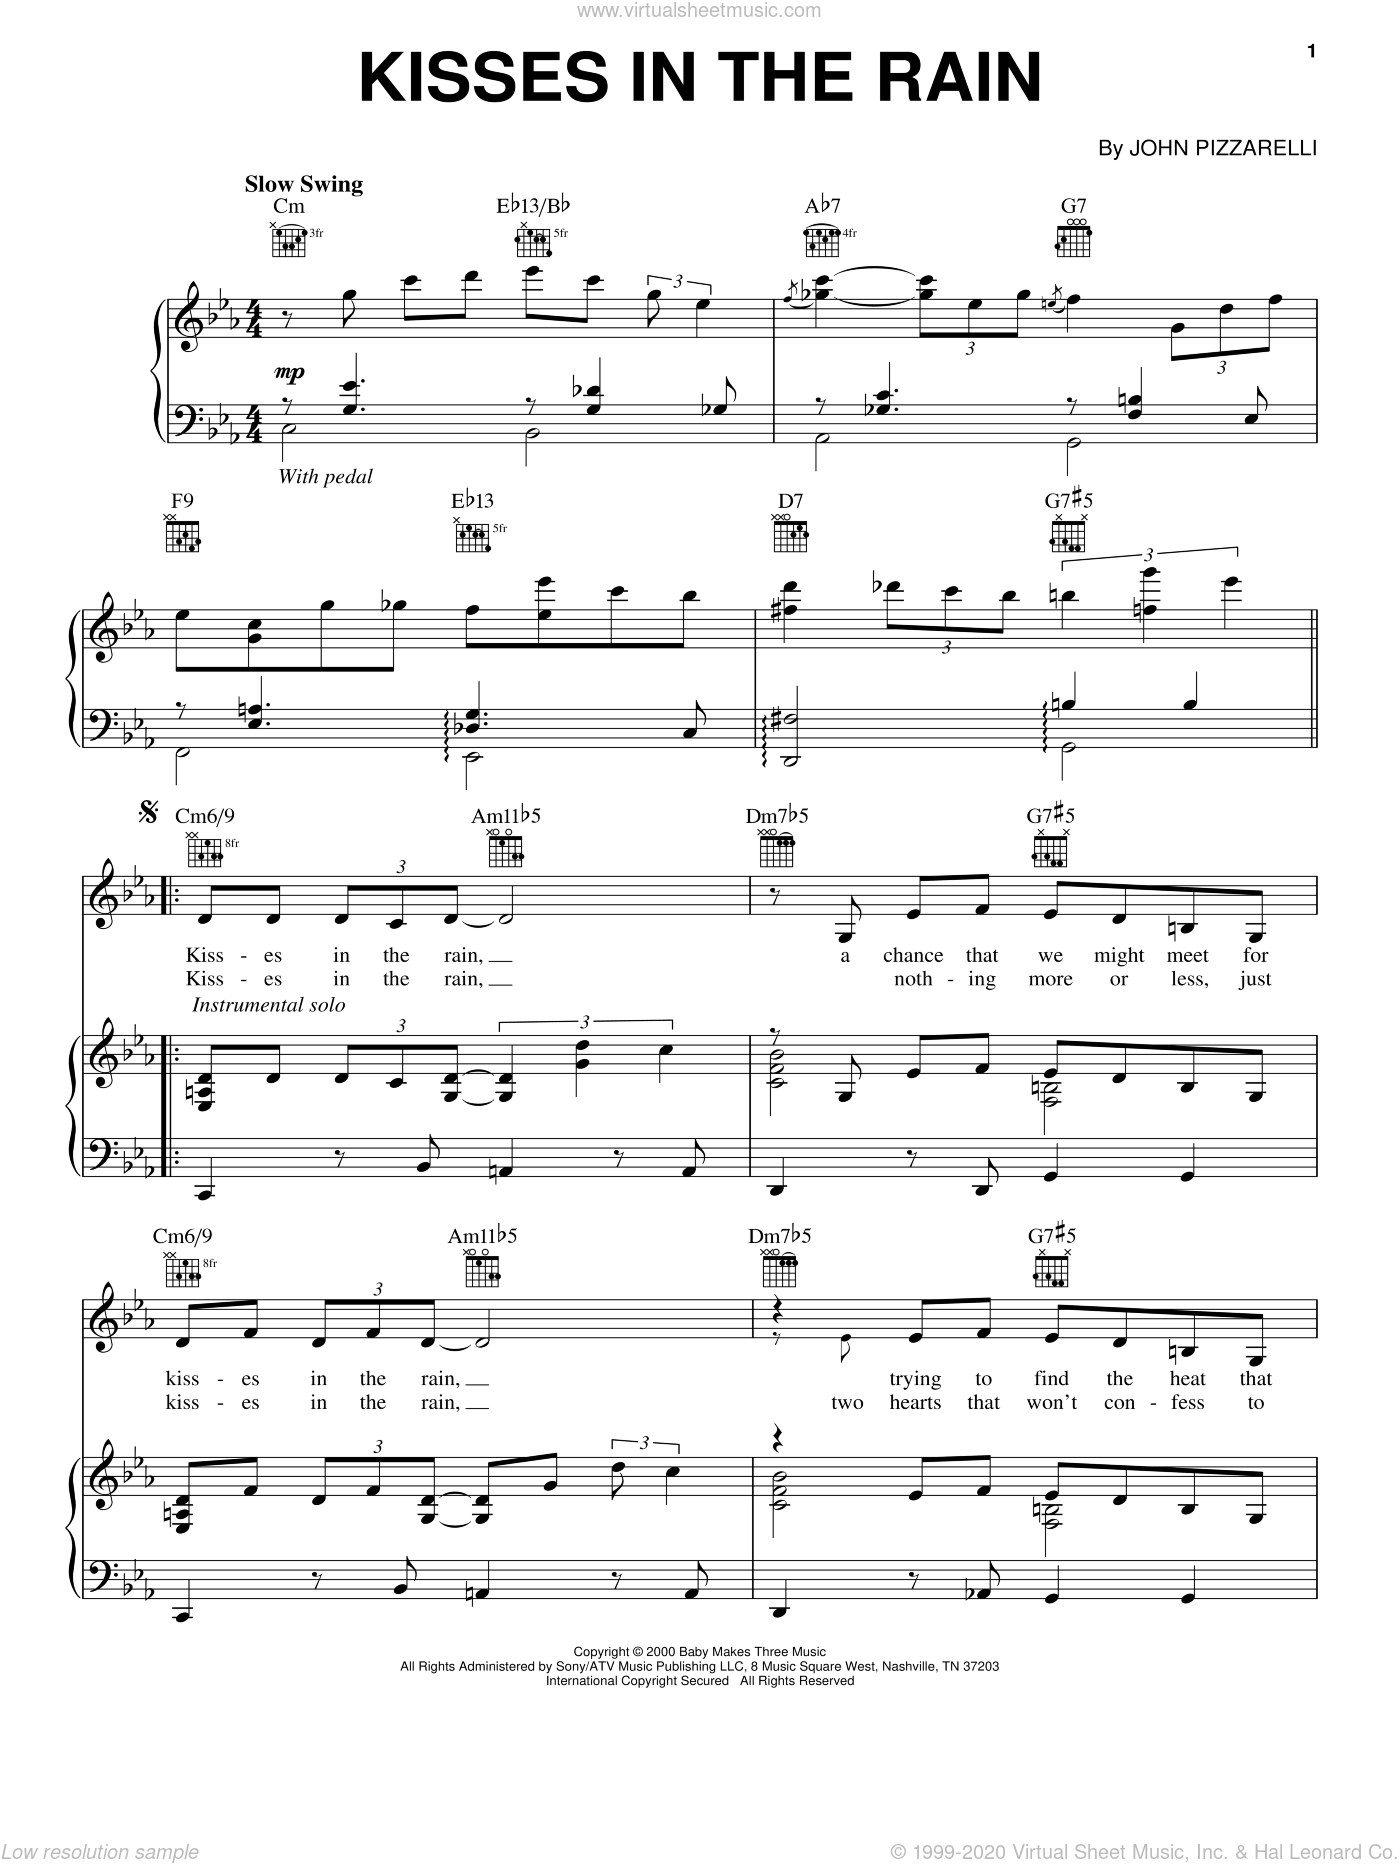 Kisses In The Rain sheet music for voice, piano or guitar by John Pizzarelli. Score Image Preview.